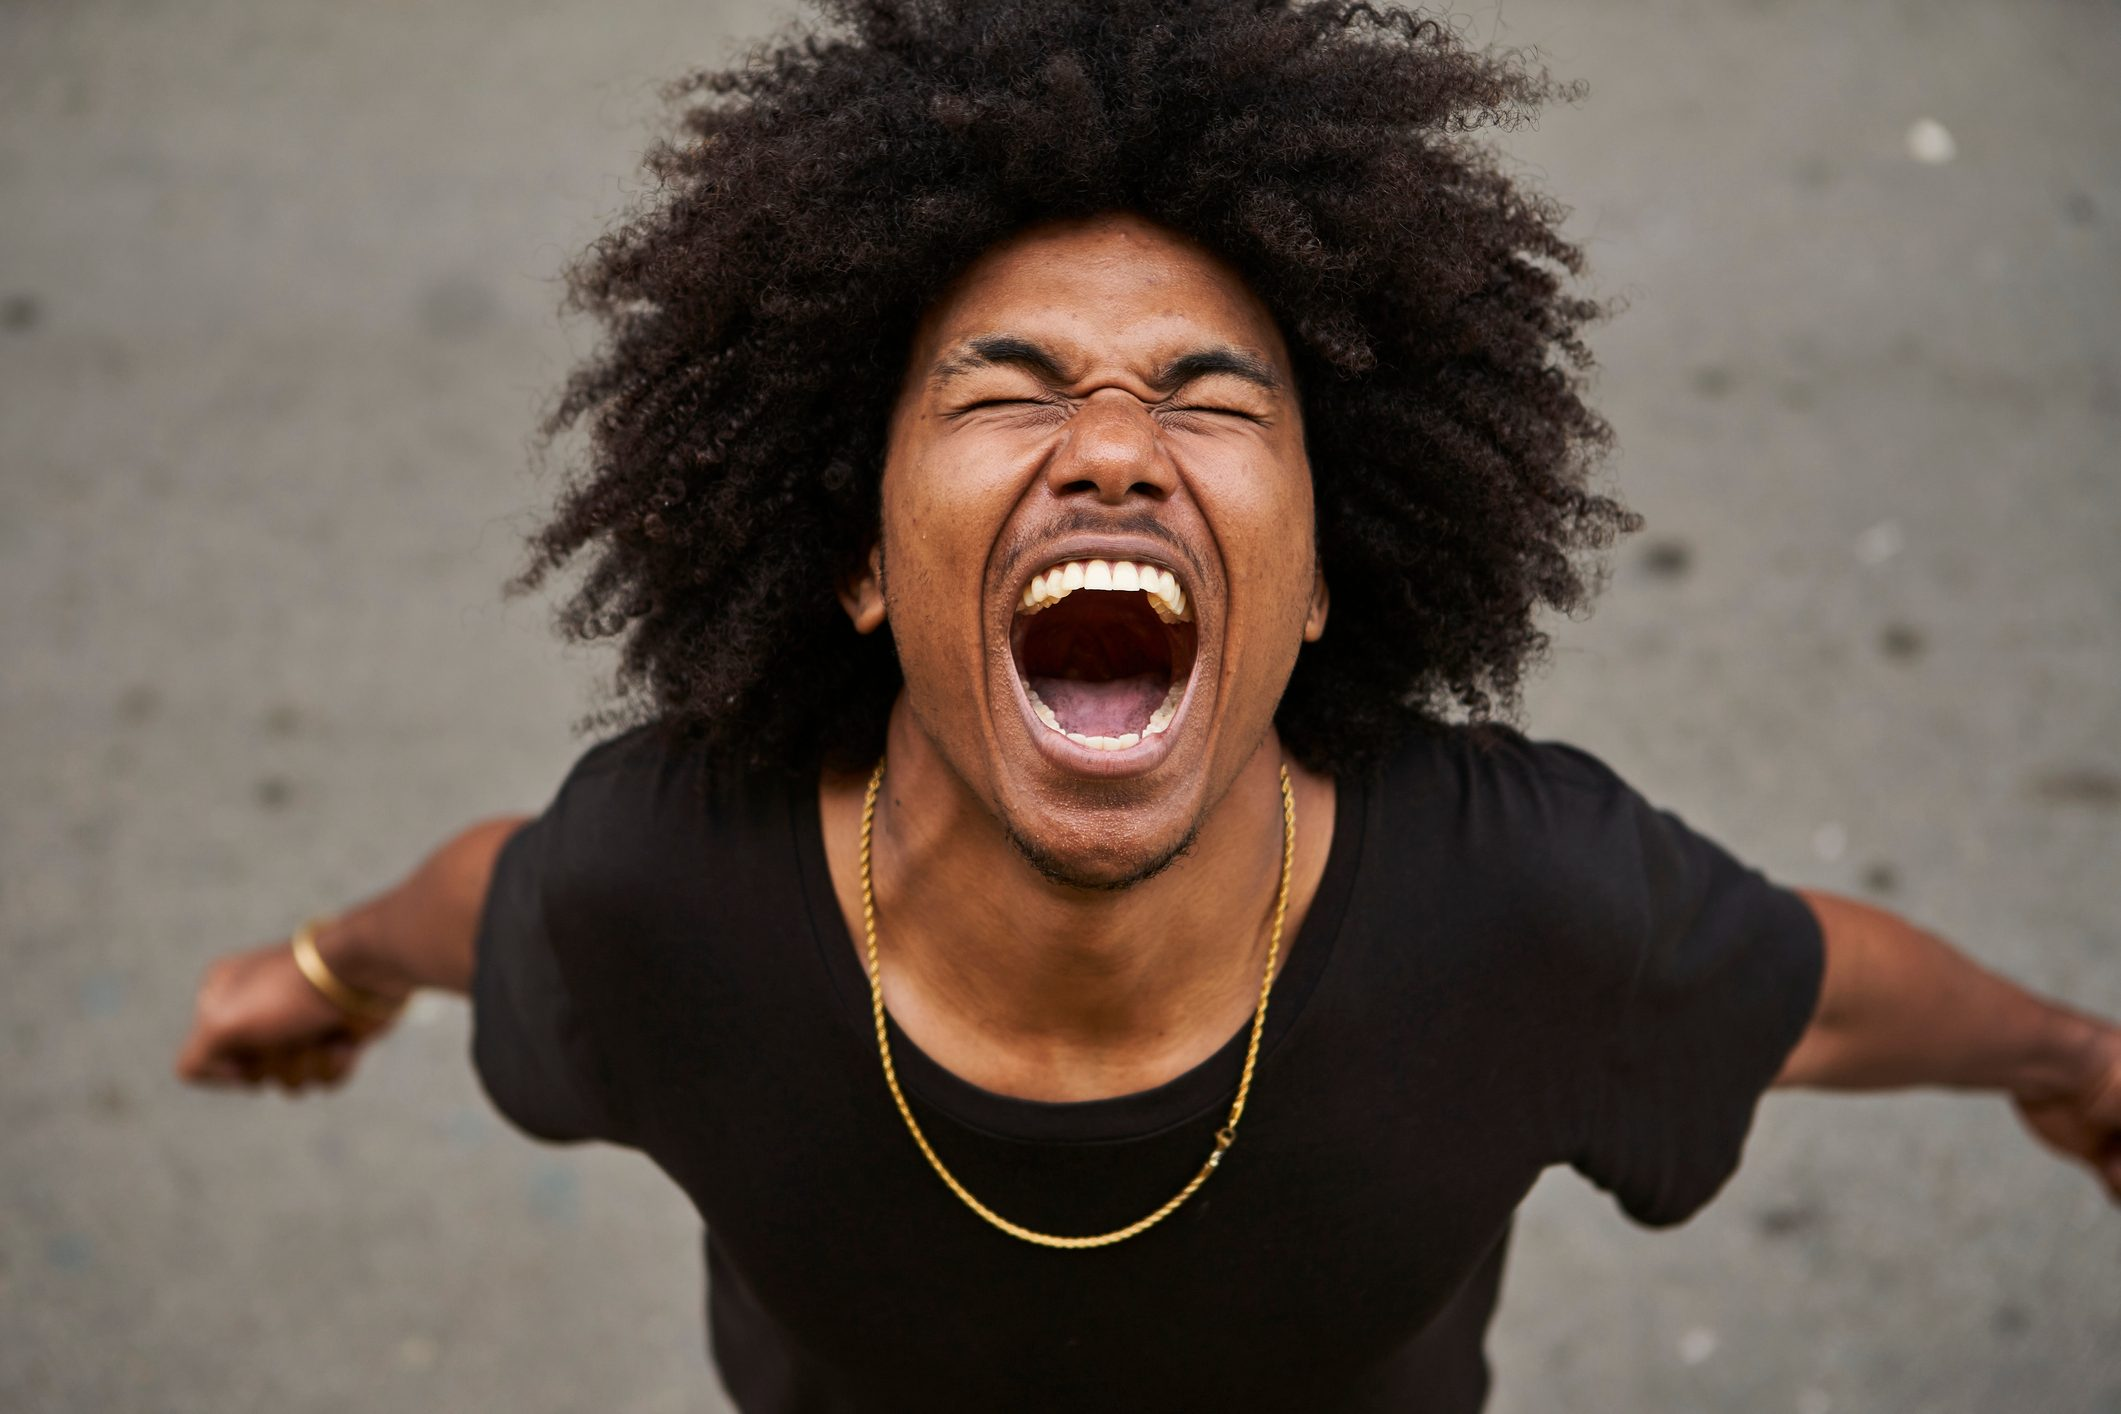 Portrait of screaming young man with afro